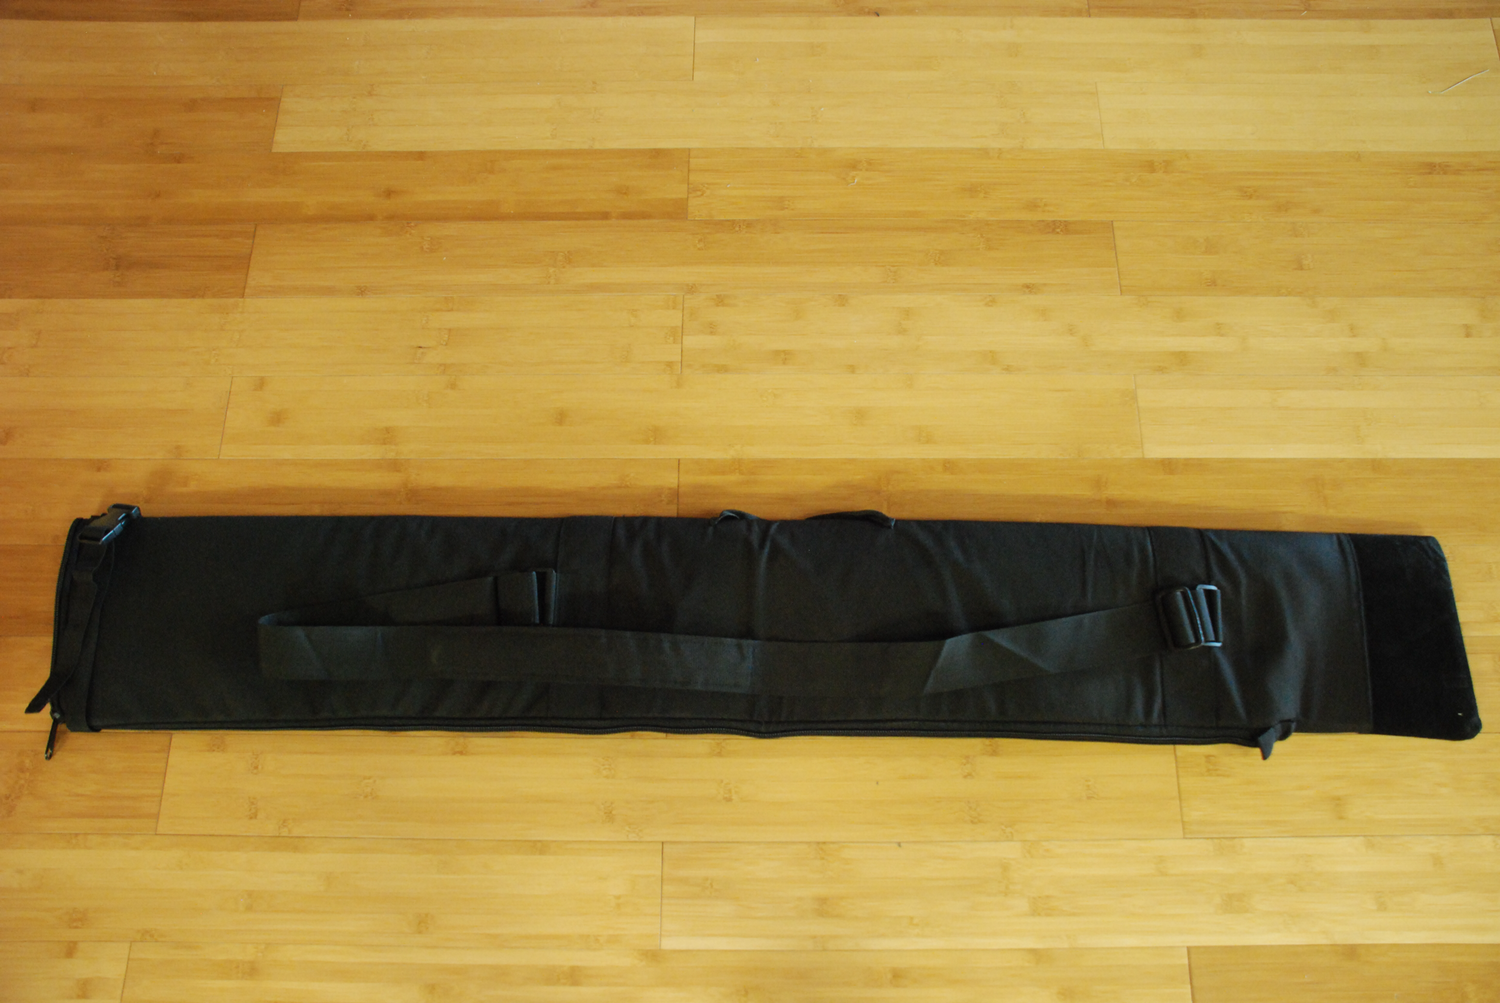 Sword Bag - Heavy Duty Ballistic Nylon